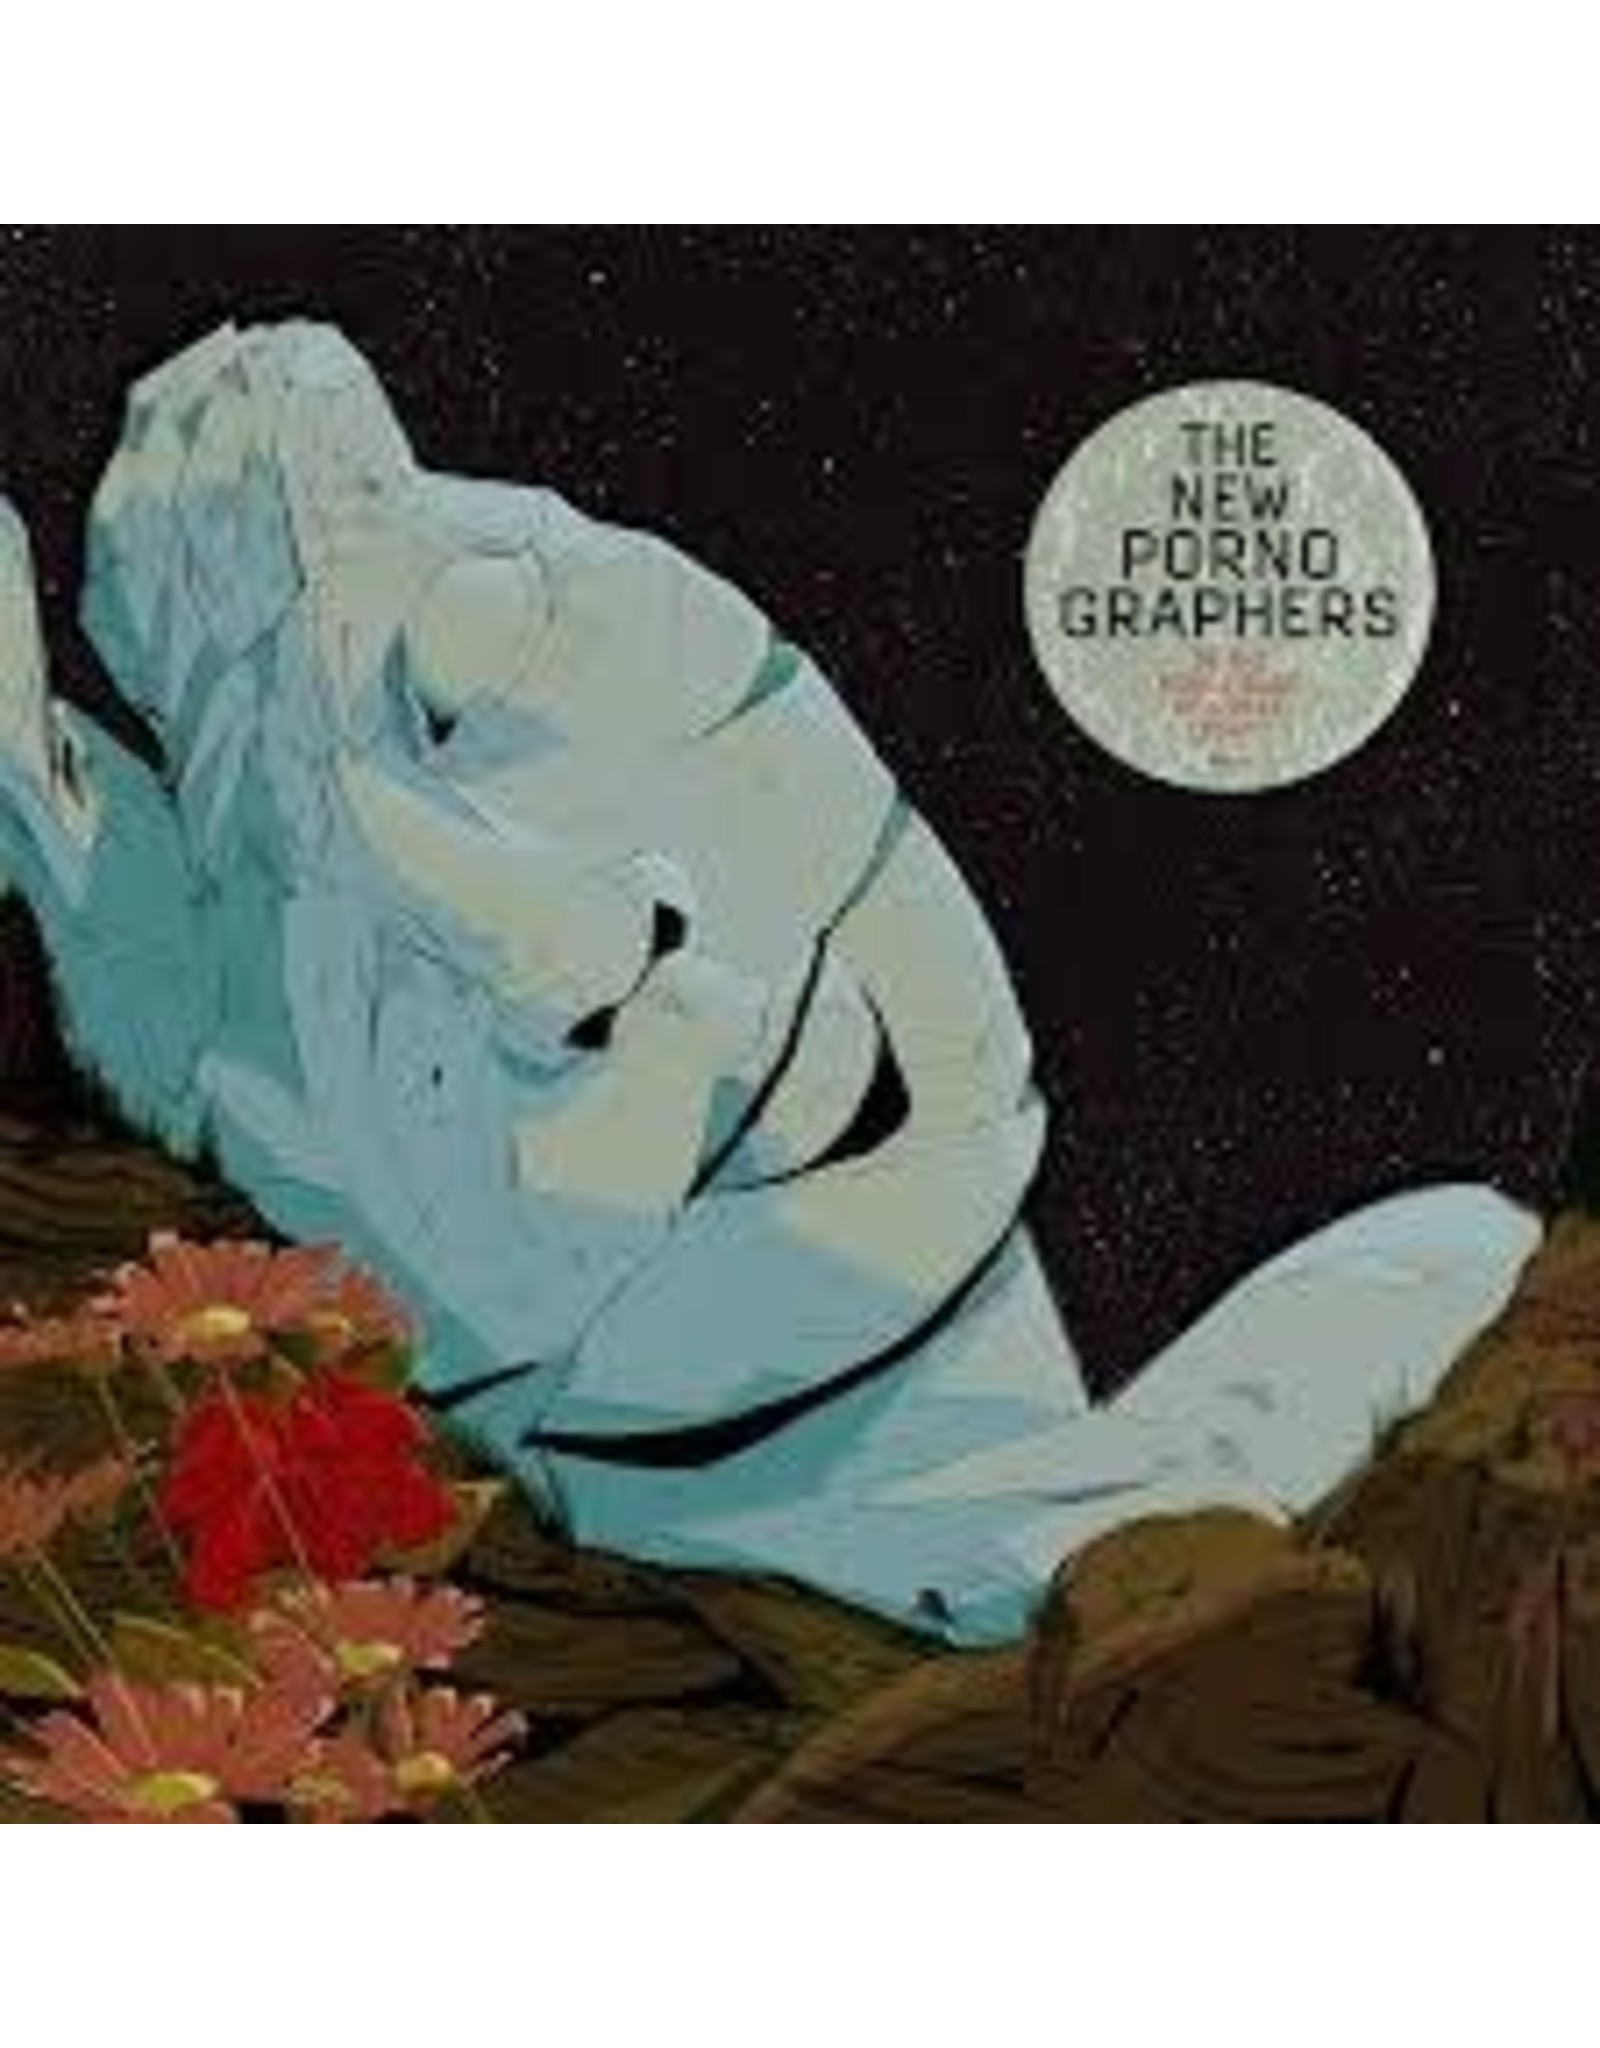 New Pornographers - In the Morse Code of Brake Lights CD